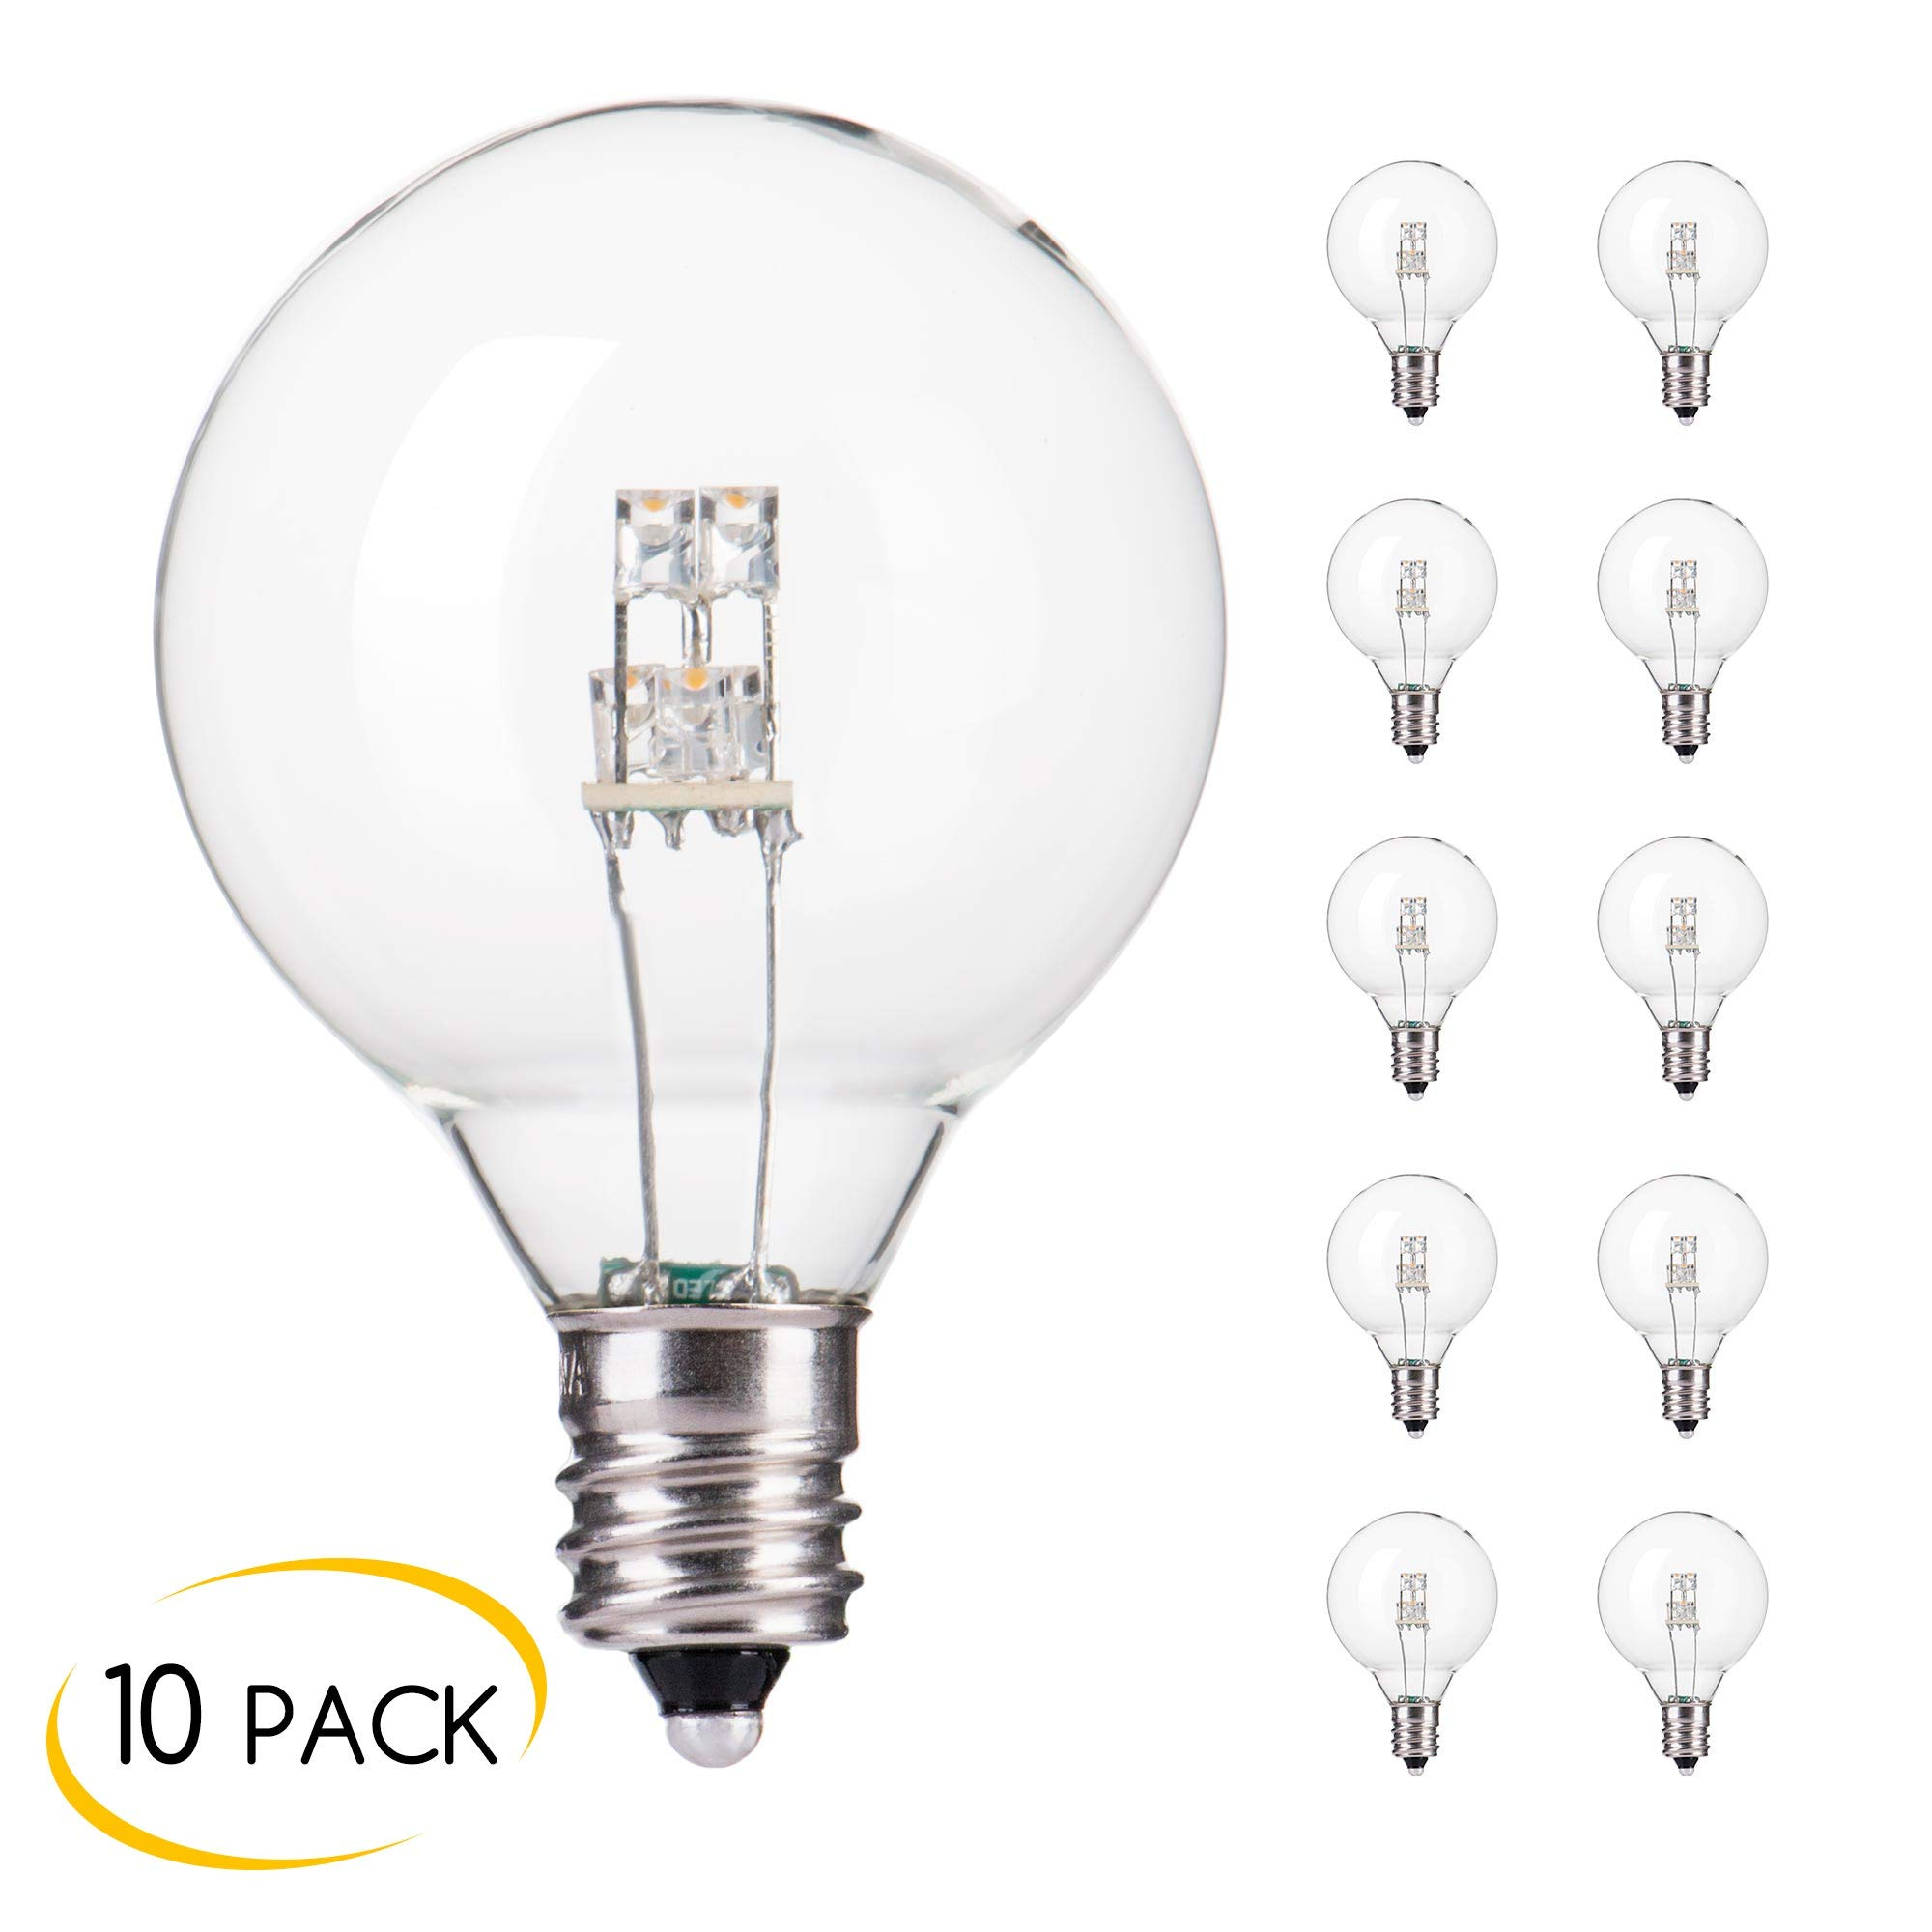 10-Pack LED G40 Replacement Bulbs, E12 Screw Base LED Globe Light Bulbs for Patio String Lights, Equivalent to 5-Watt Clear Light Bulbs by Brightown